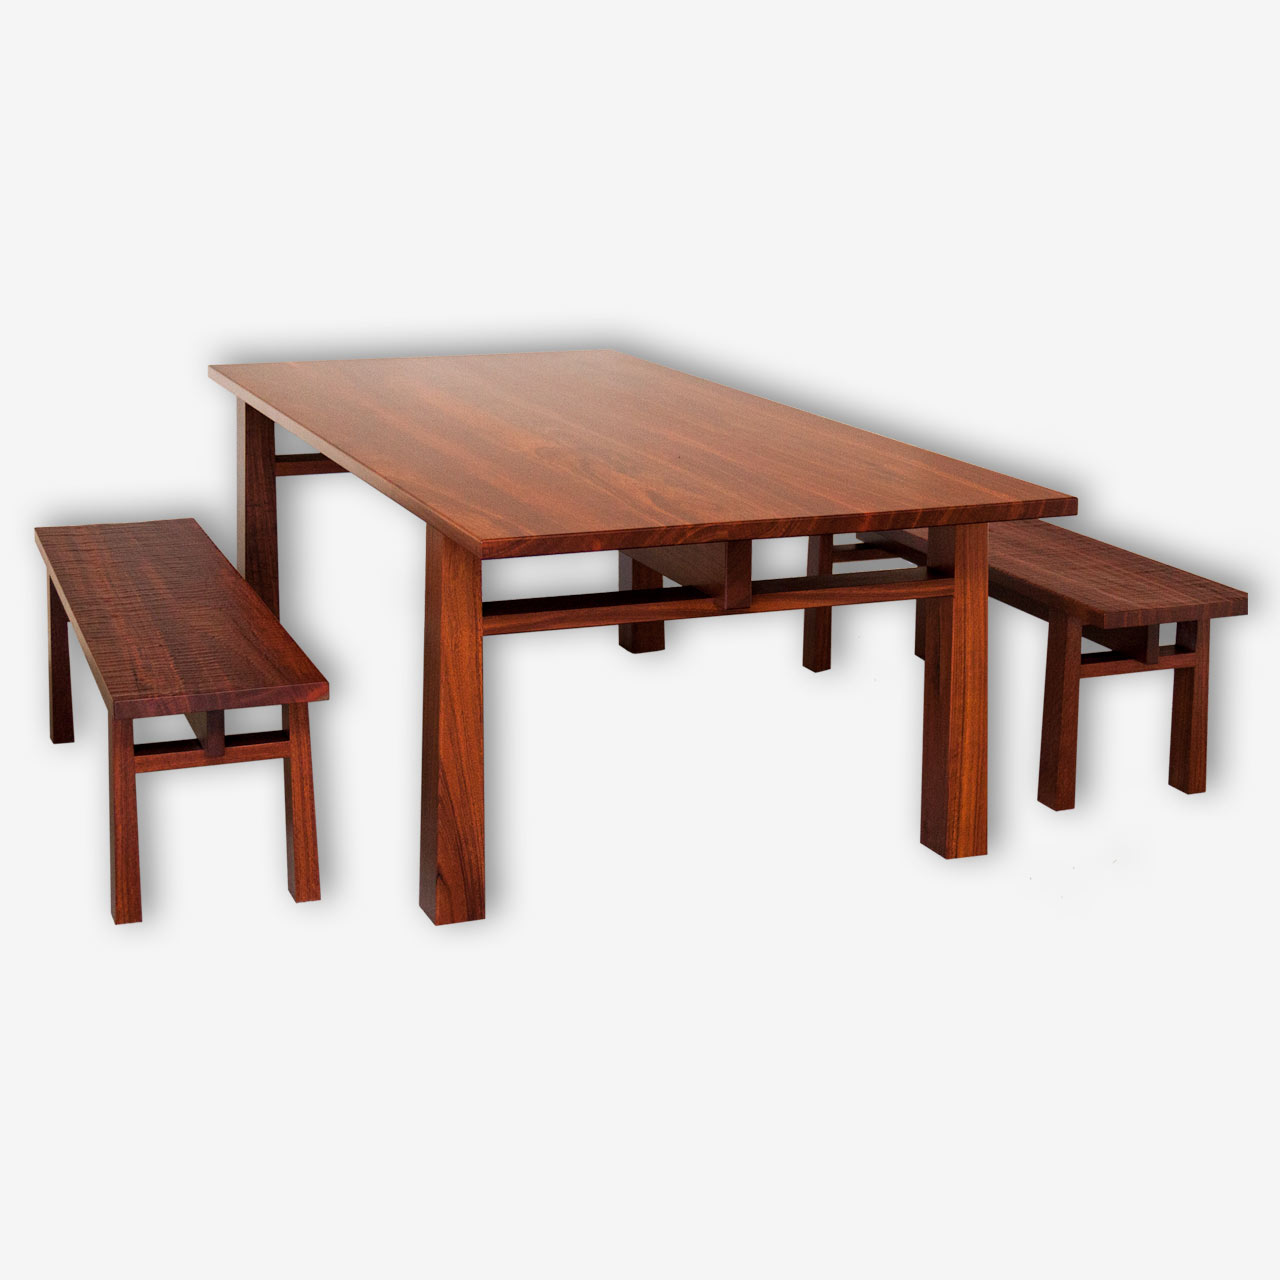 Dining room furniture amp ideas table chairs ikea for Dining room tables perth